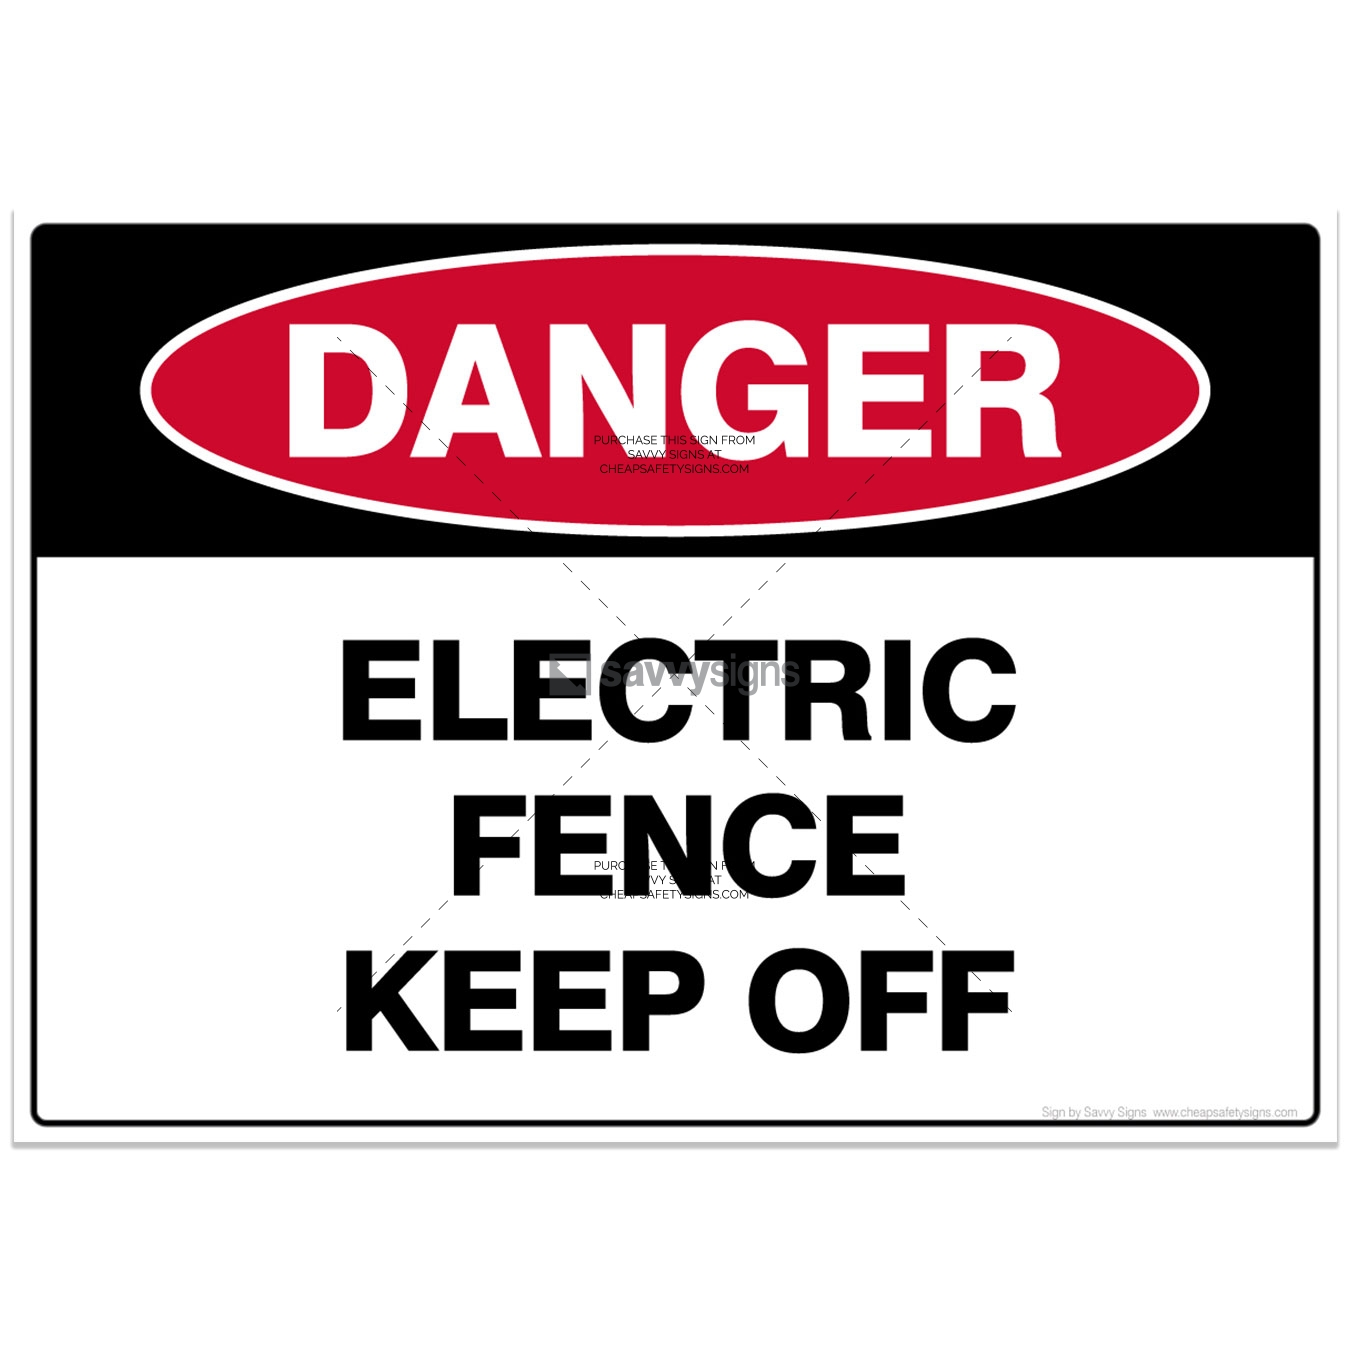 SSDAN3040-DANGER-Workplace-Safety-Signs_Savvy-Signs_v4.1